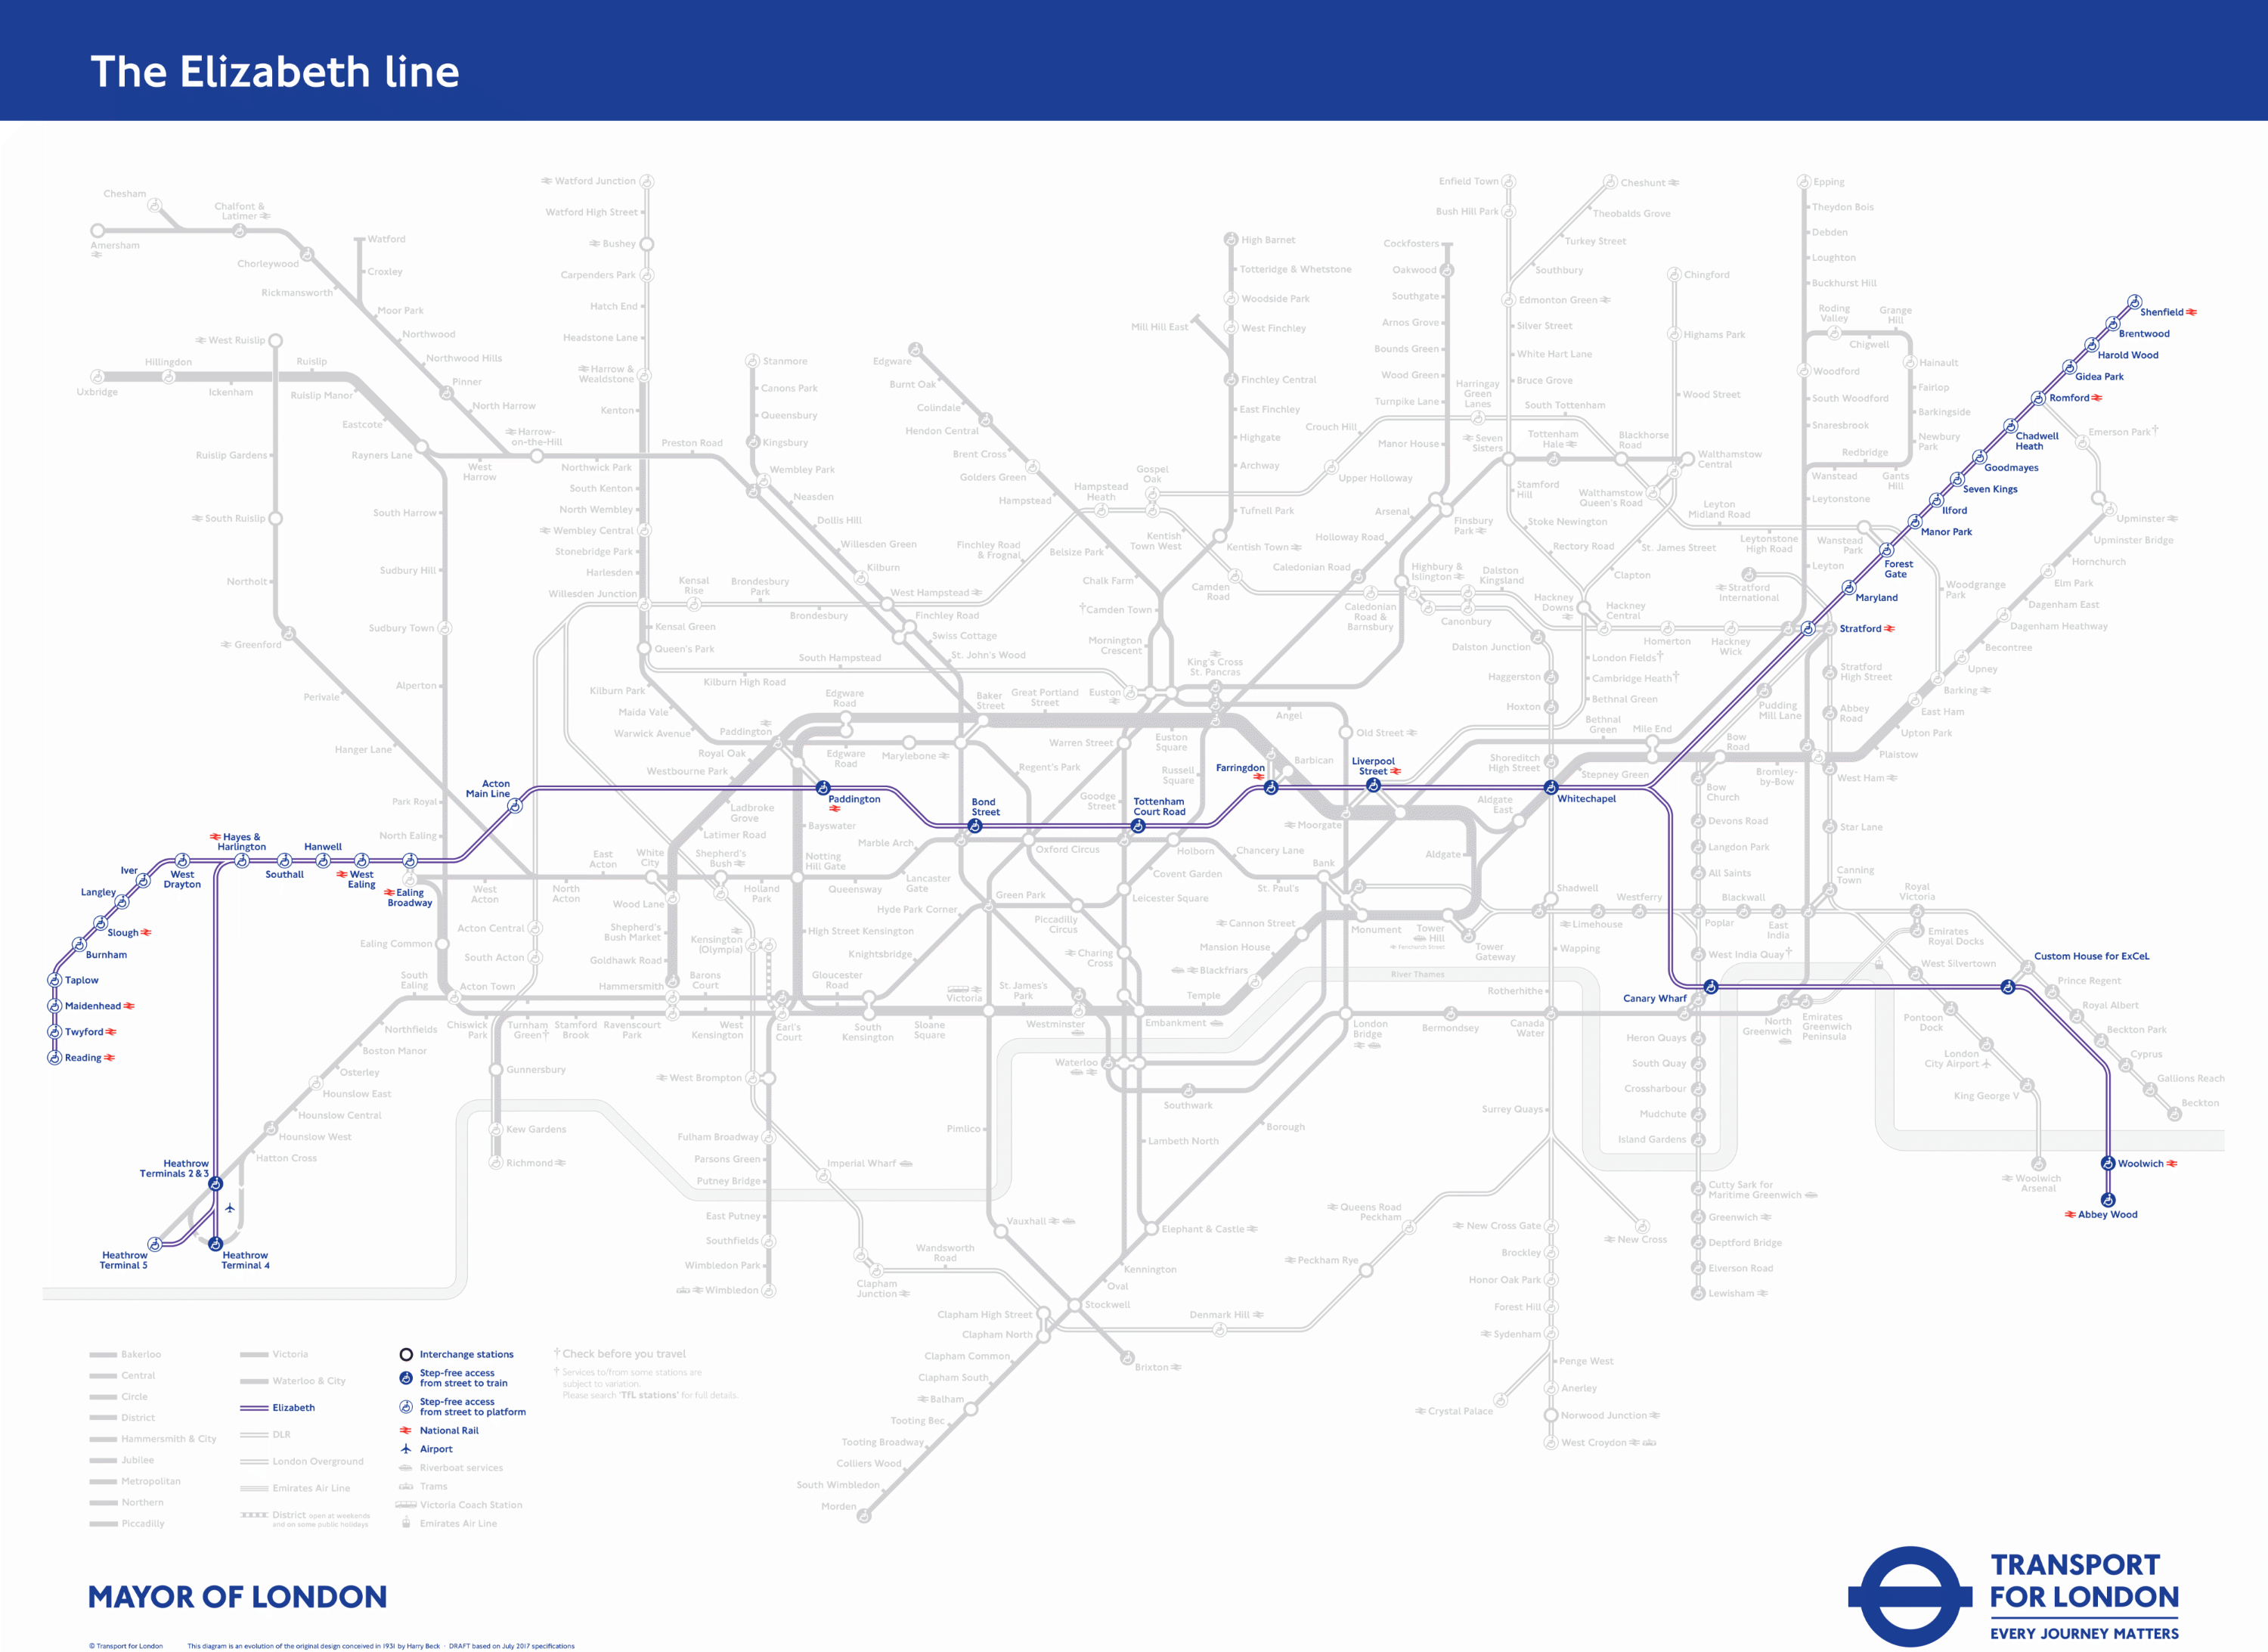 Elizabeth line network map